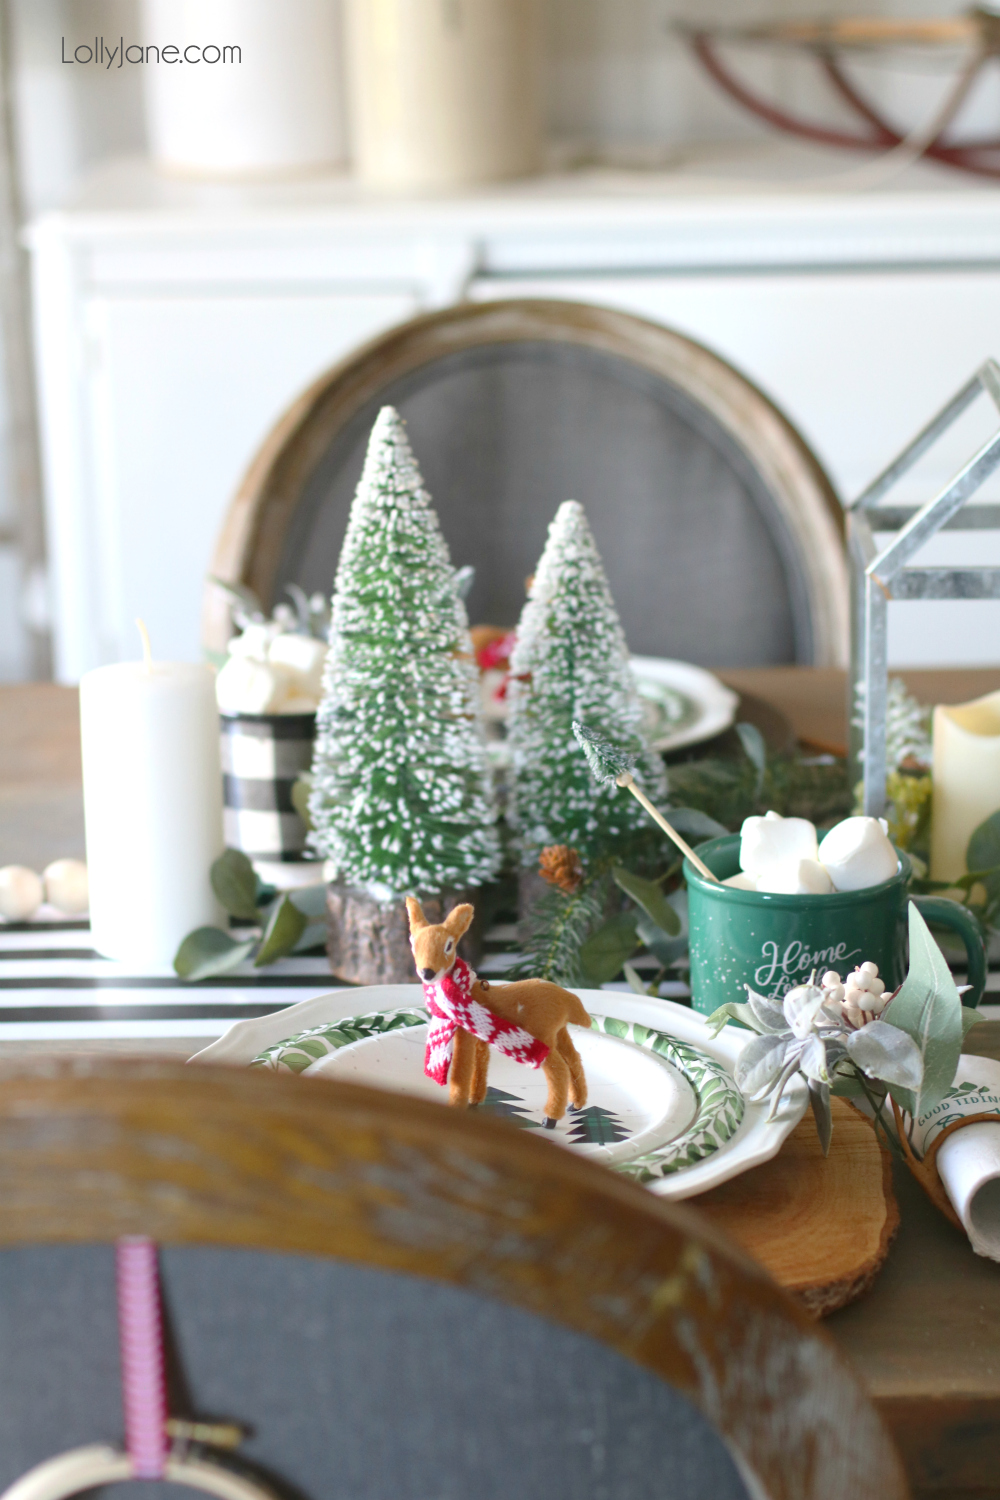 Bottle brush trees are ALL the rage right now and are so versatile when it comes to decorating for the holidays! See how we used them for the cutest ever Christmas tablescape! #christmas #christmastablescape #christmascenterpiece #centerpiece #wintertablescape #diy